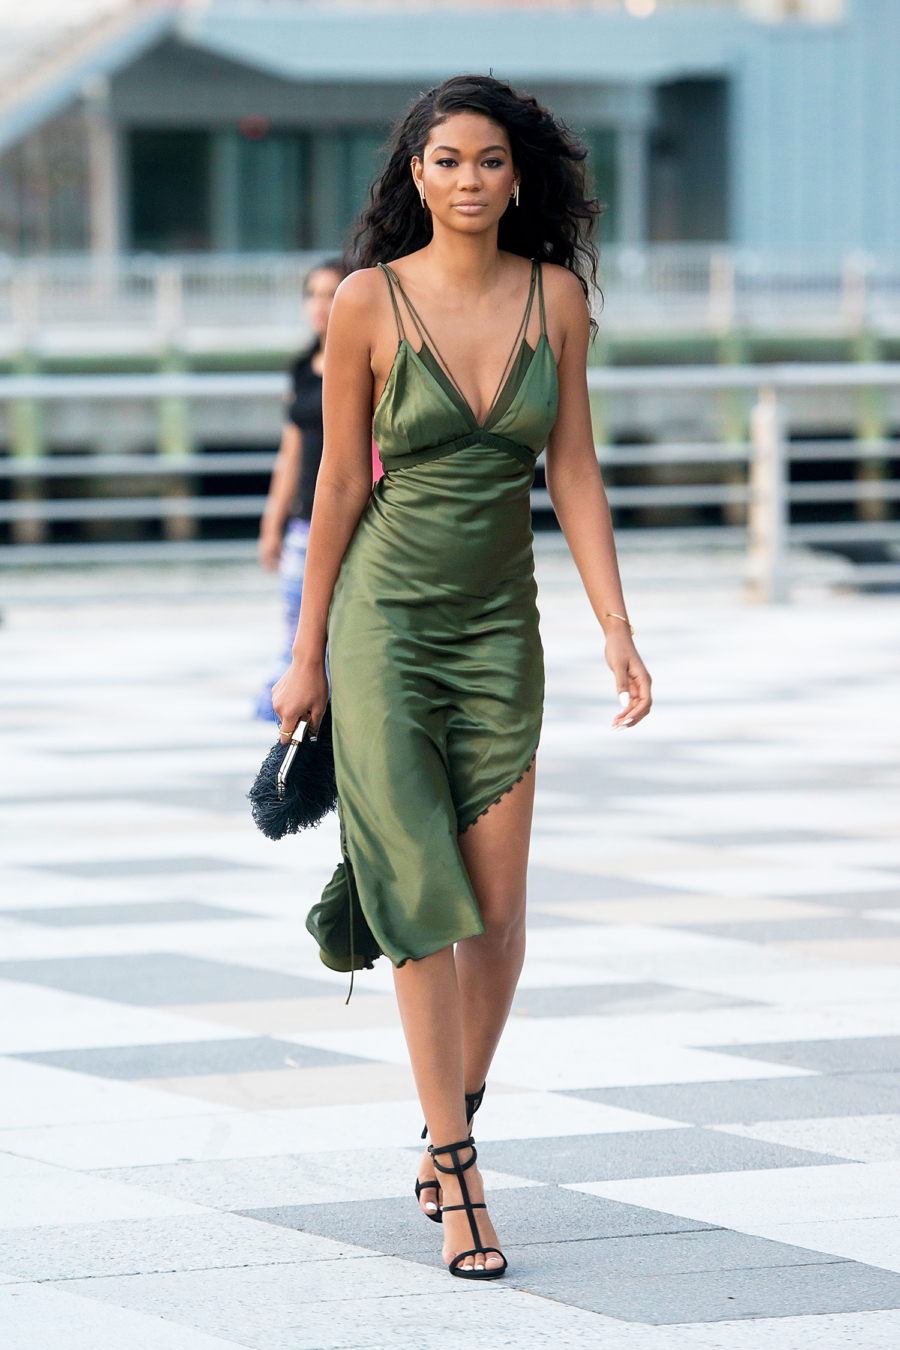 Satin Dress - Best Dressed Spring Wedding Guest // Notjessfashion.com